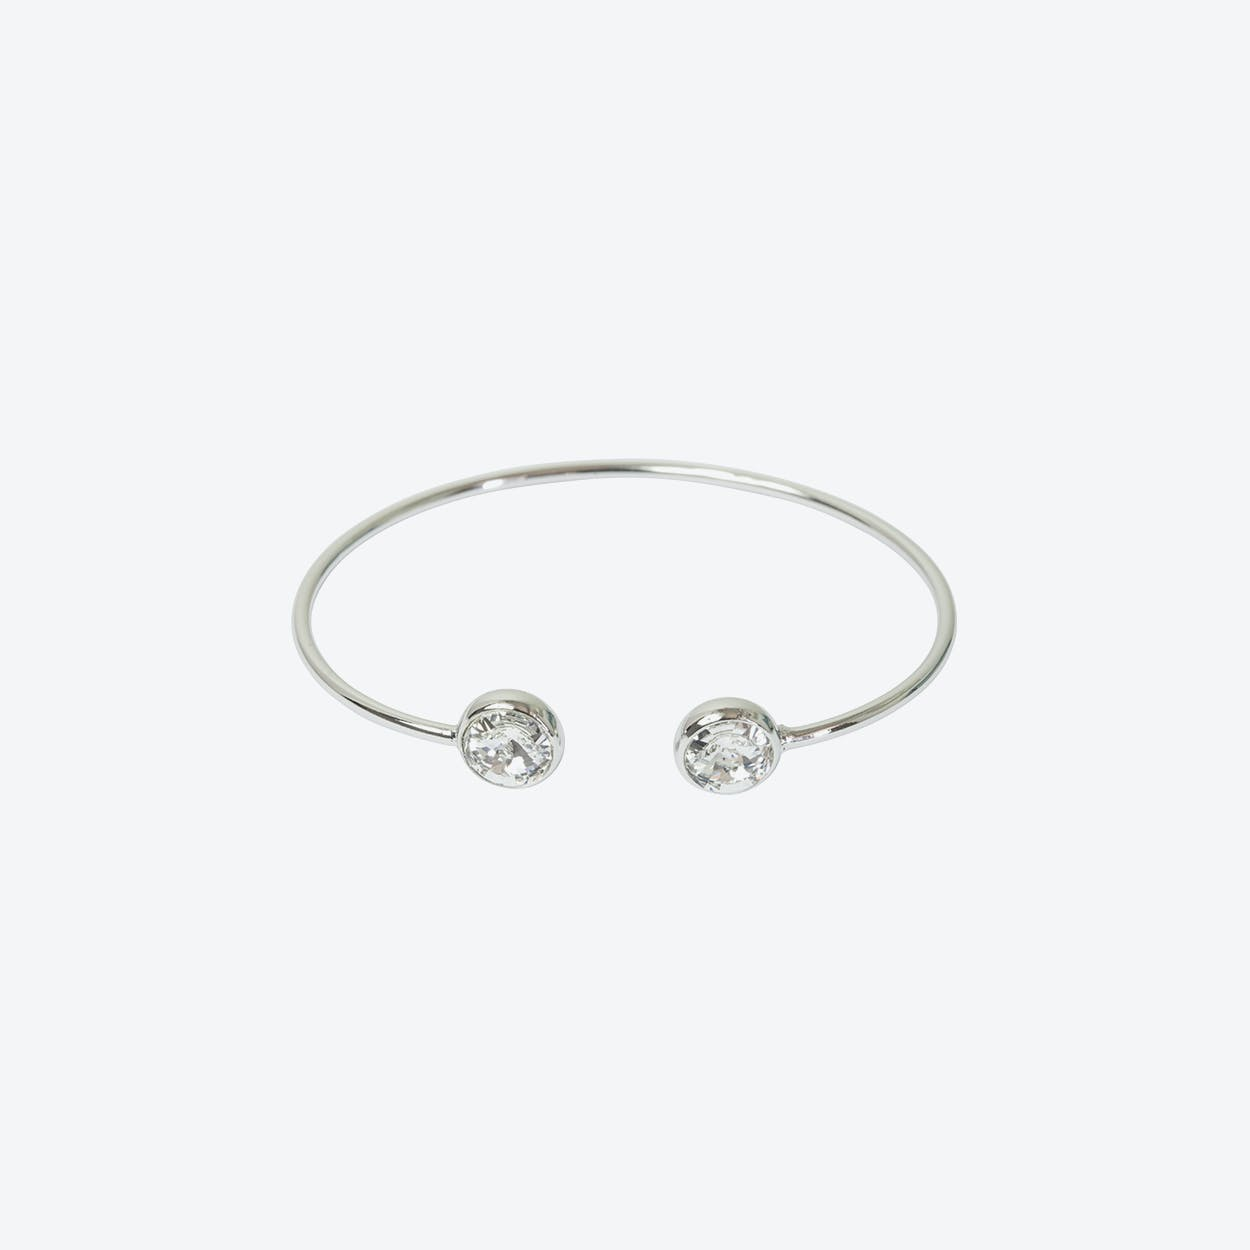 Silver Open Bangle with Crystal Stone Ends